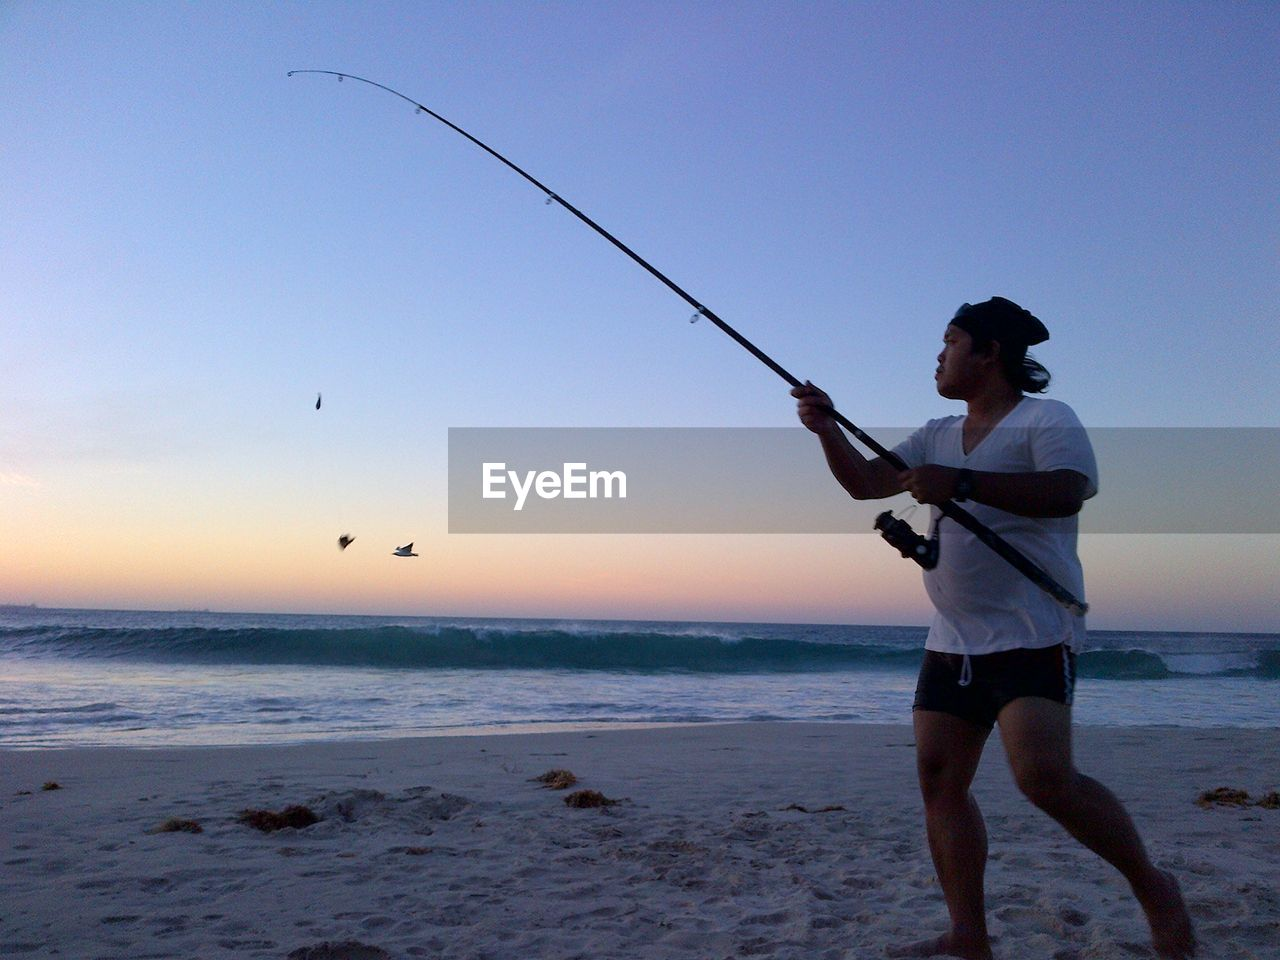 sky, water, sea, beach, land, leisure activity, real people, one person, beauty in nature, holding, rod, fishing rod, scenics - nature, lifestyles, horizon over water, fishing, horizon, activity, men, outdoors